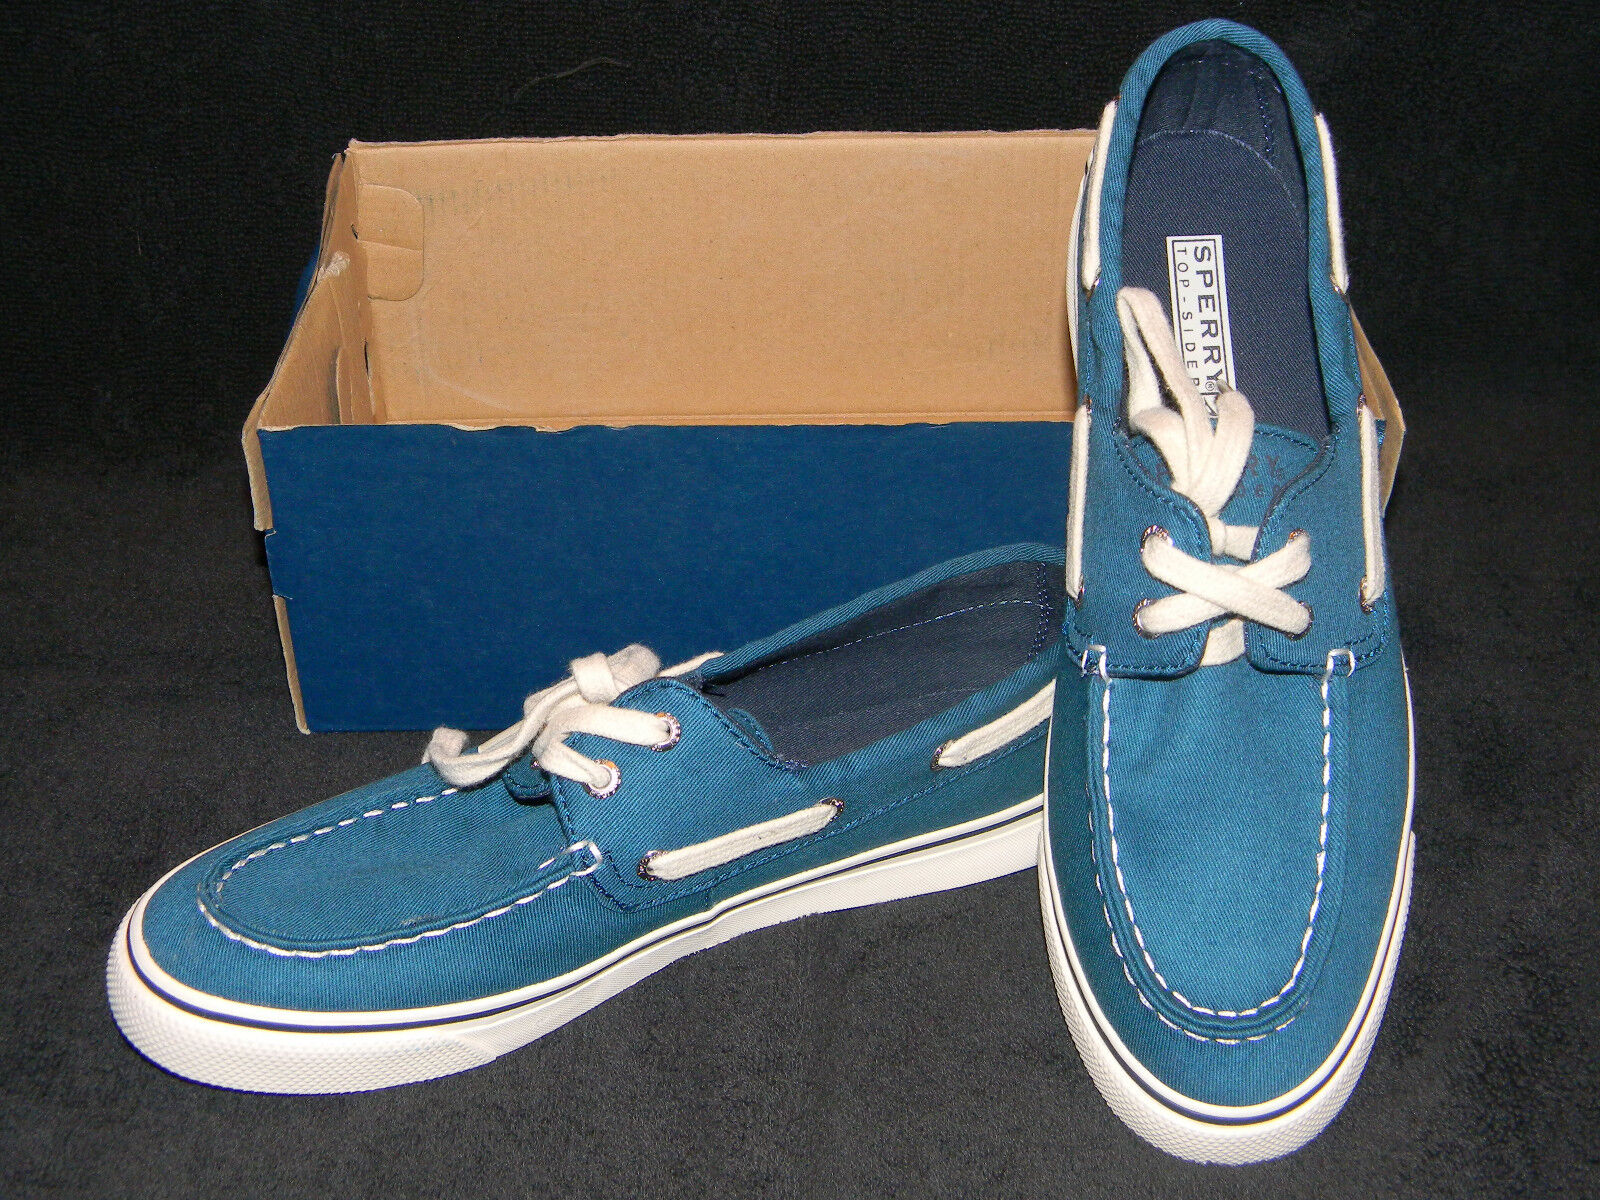 New Sperry Women's Teal Biscayne Boat shoes-Size 7 Retail